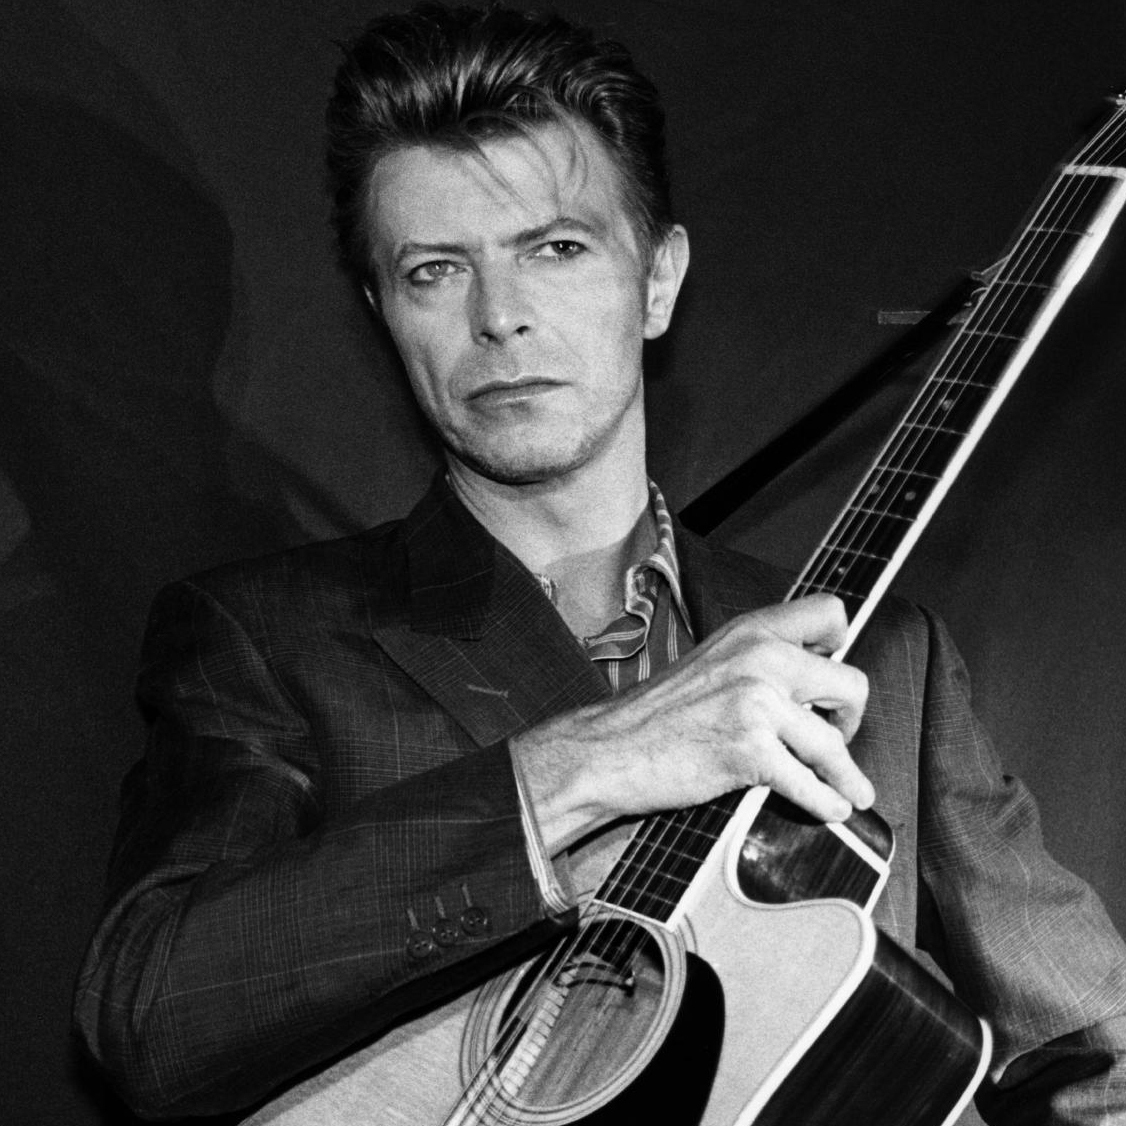 Ouça 'To Be Love', música de David Bowie gravada nos anos 70